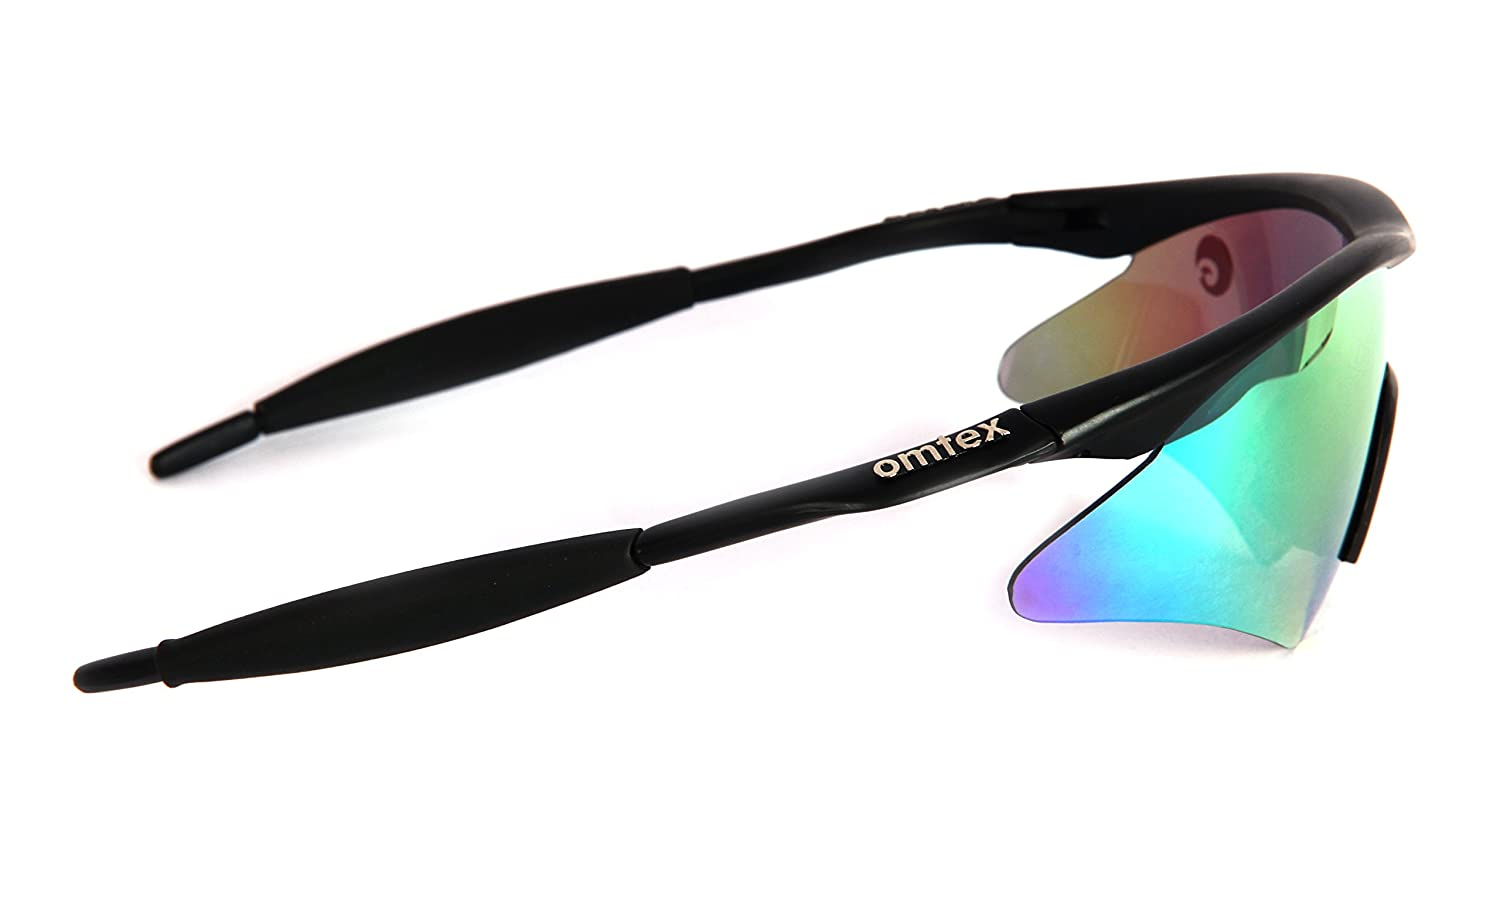 597fe57e21f0 Omtex Prime Rainbow Sports Sunglasses   Goggles with Cover  Amazon.in   Sports